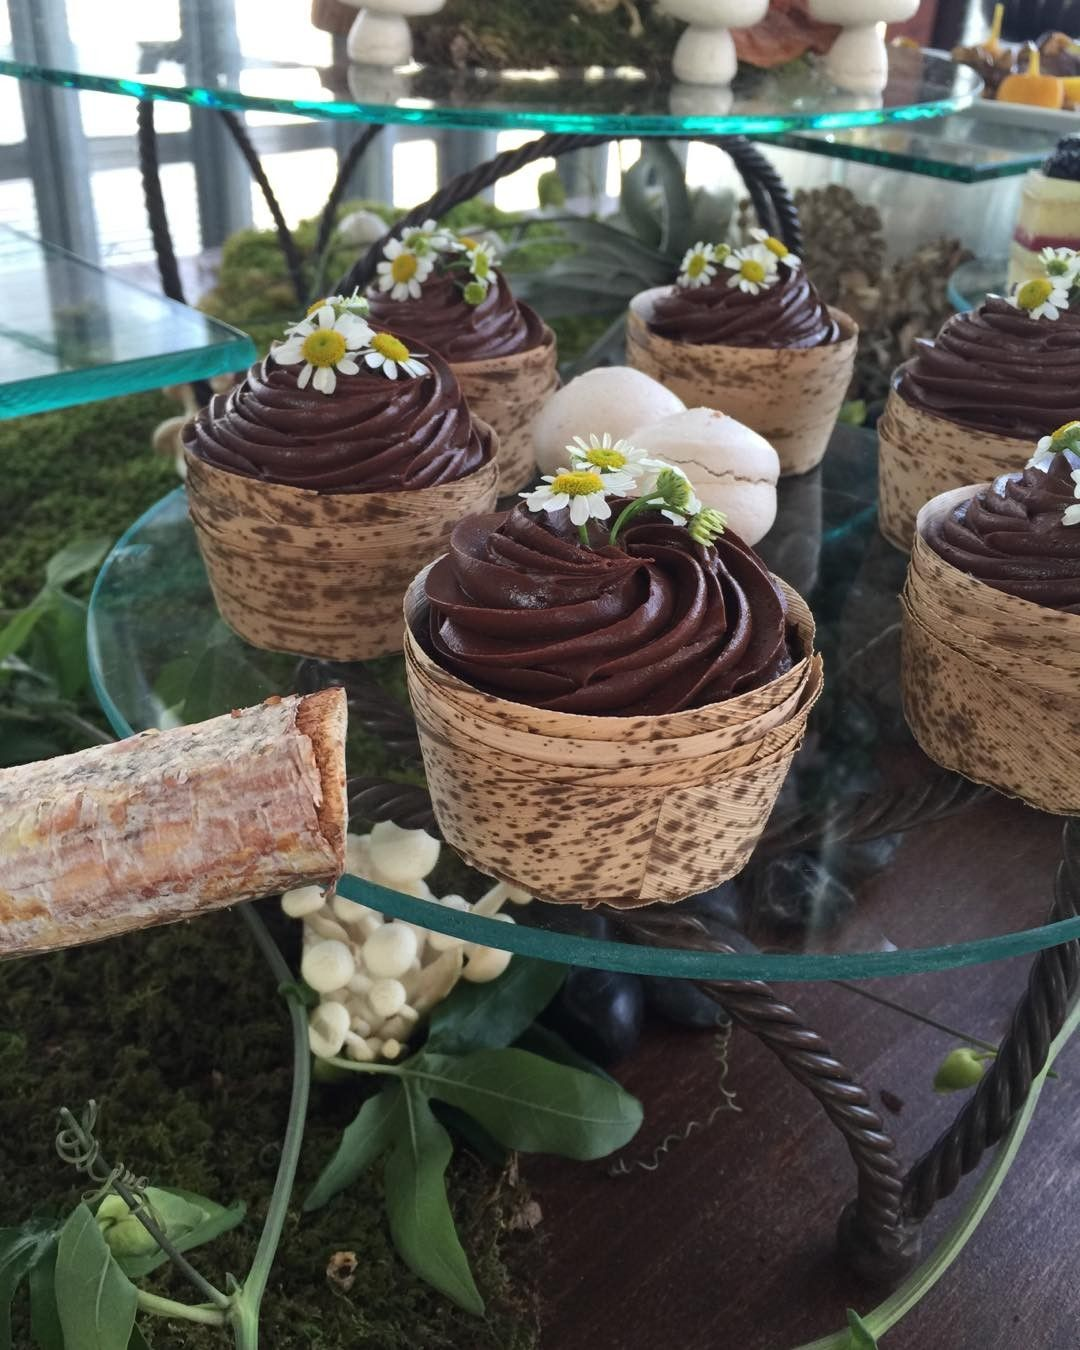 Fun cupcakes #cateringworks #specialevents #raleighcupcakes